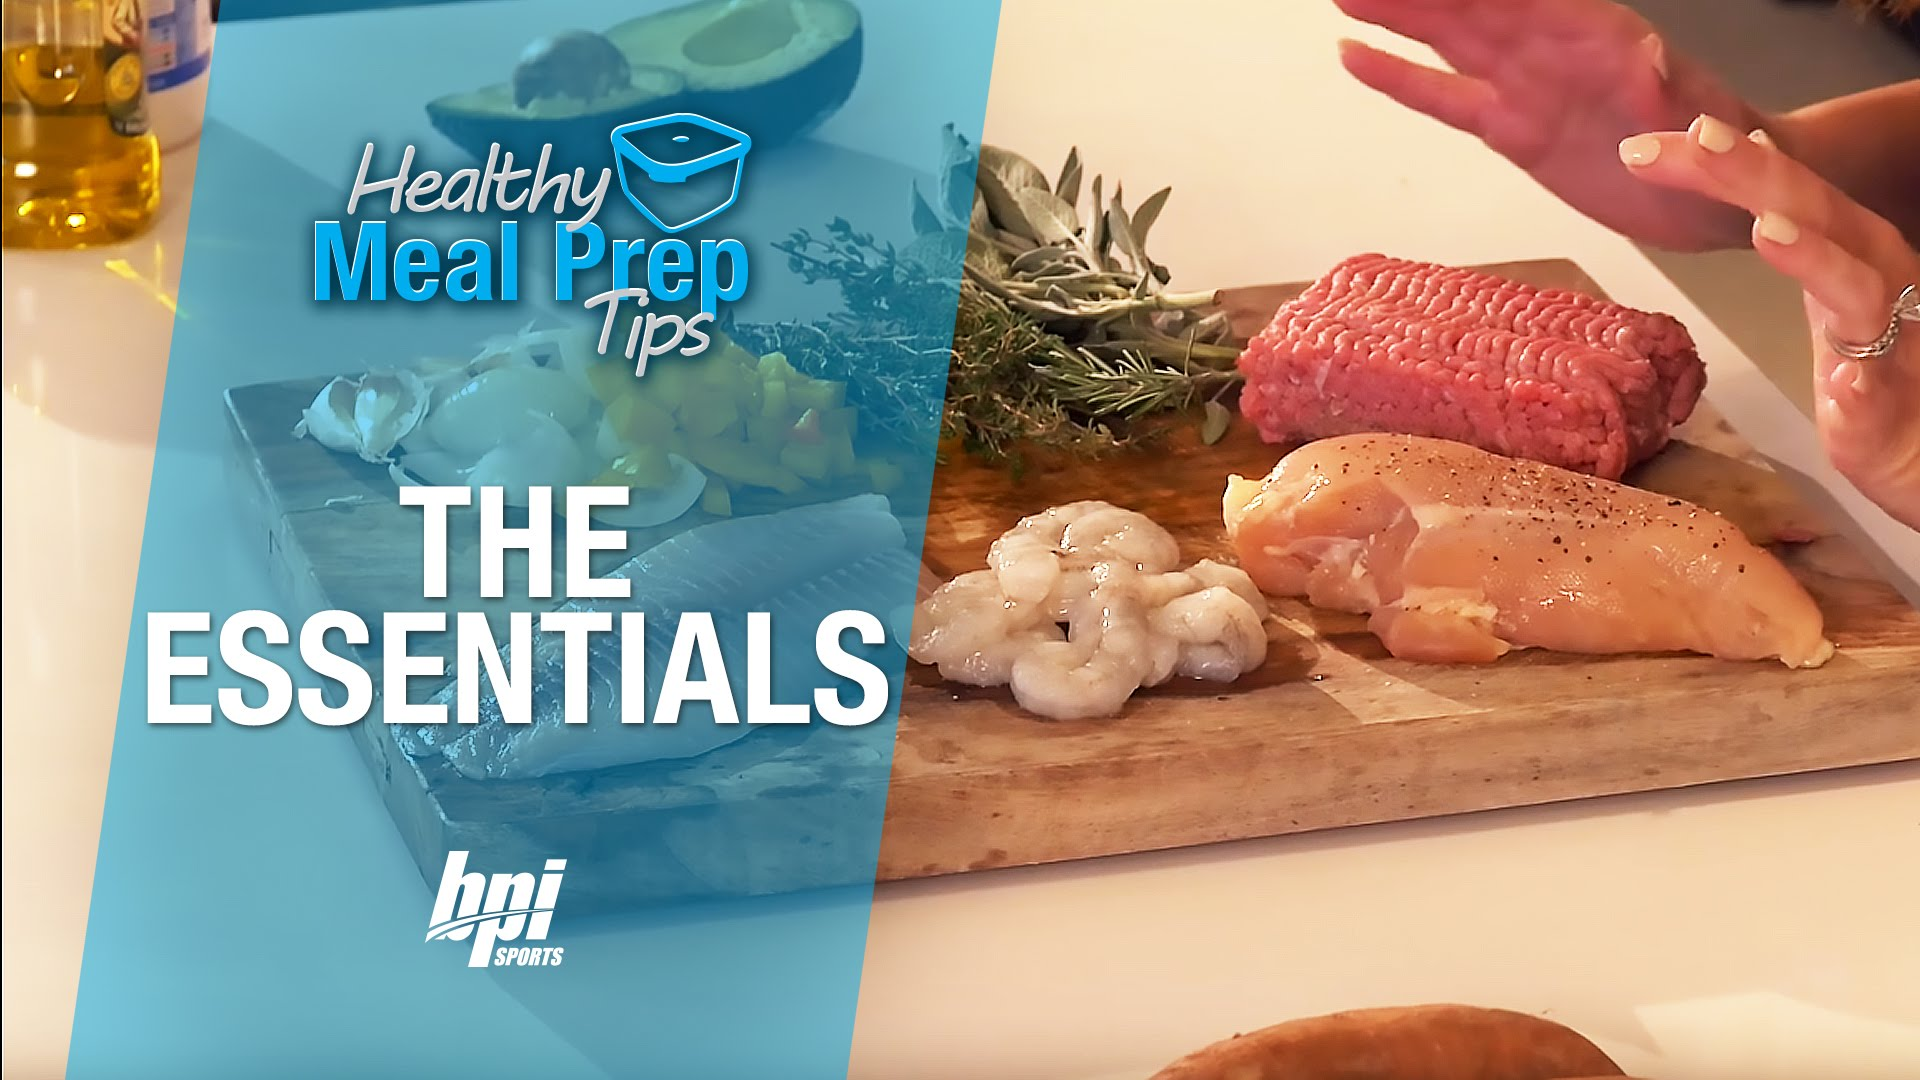 Healthy-Meal-Prep-Tips-The-Essentials-BPI-Sports